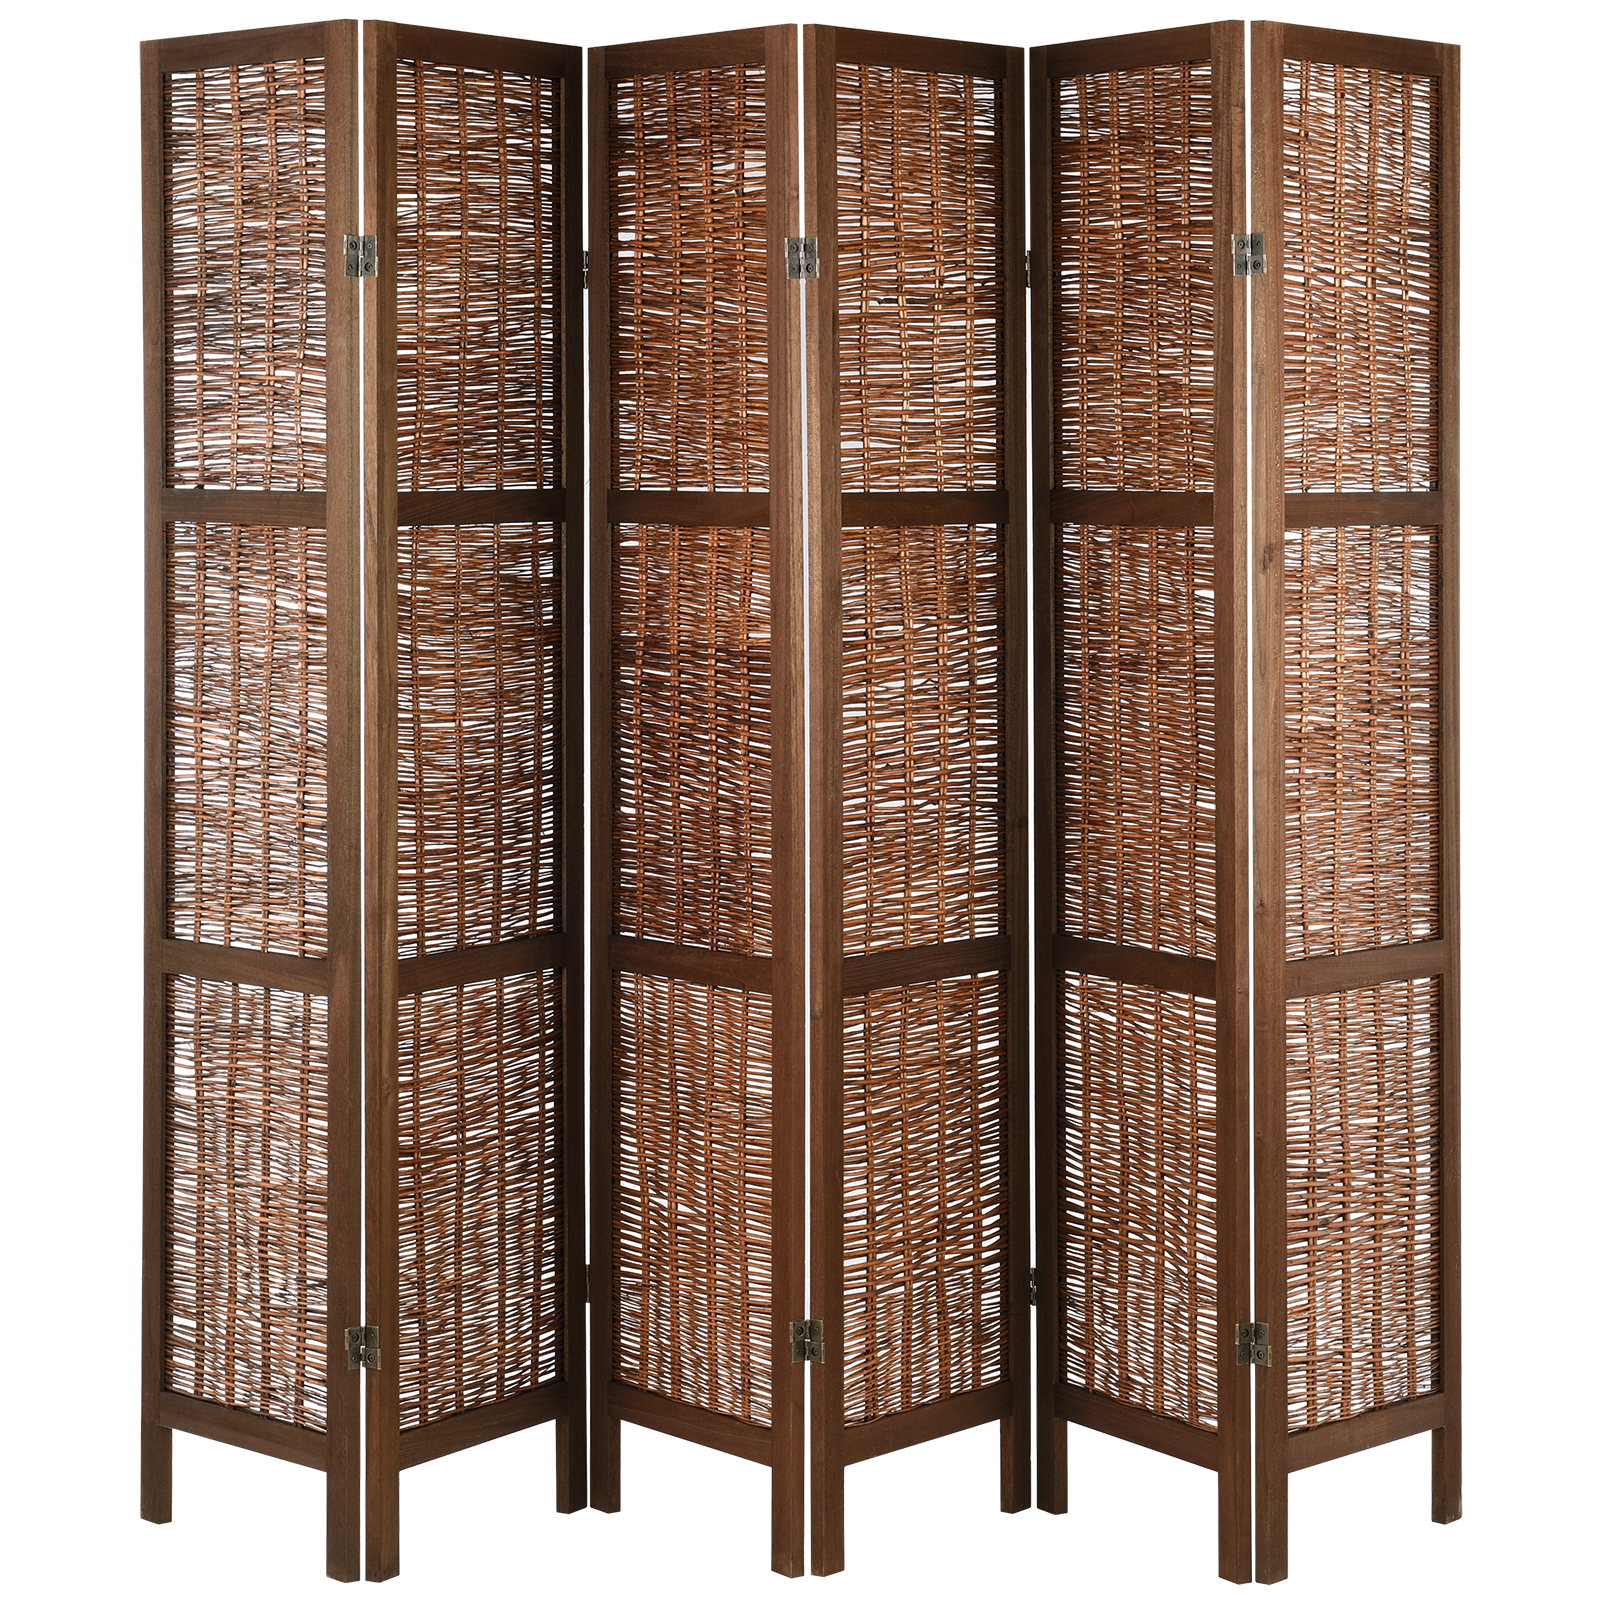 Shabby Chic Vintage Milano.Wooden Shabby Chic Vintage Slat Room Divider Privacy Screen